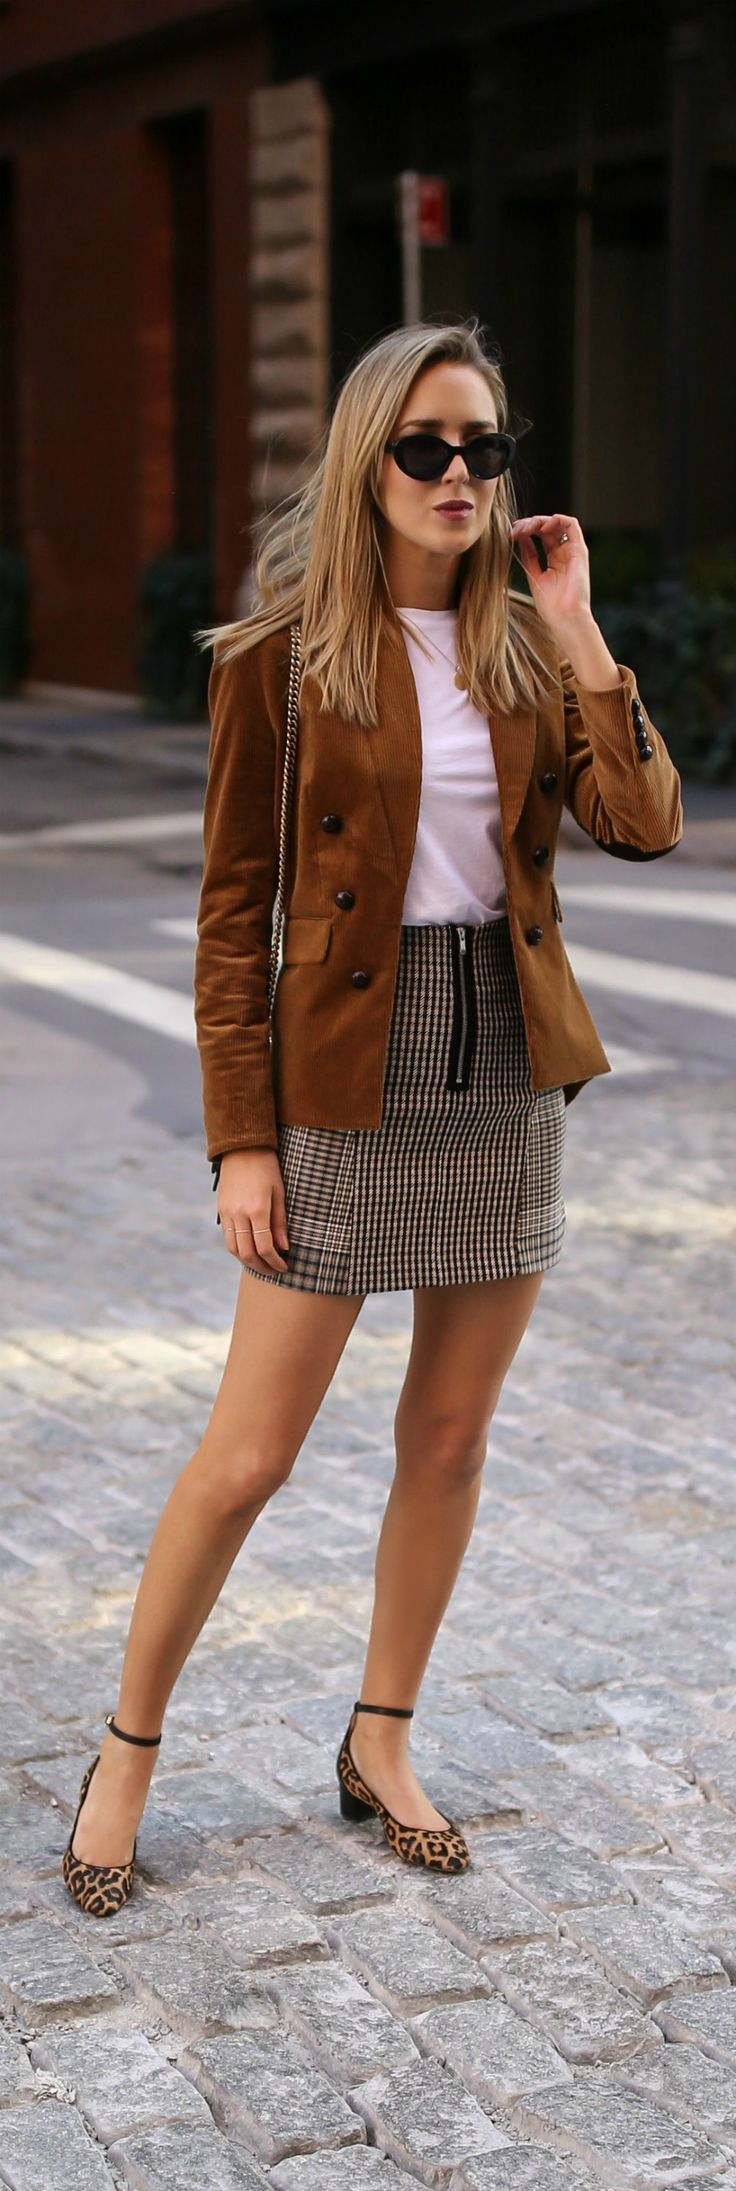 Trend Memo Day 5: Corduroy // Corduroy jacket, white short sleeve t-shirt, checked mini skirt, leopard print pumps {Veronica Beard, J Brand, Maje, tre…